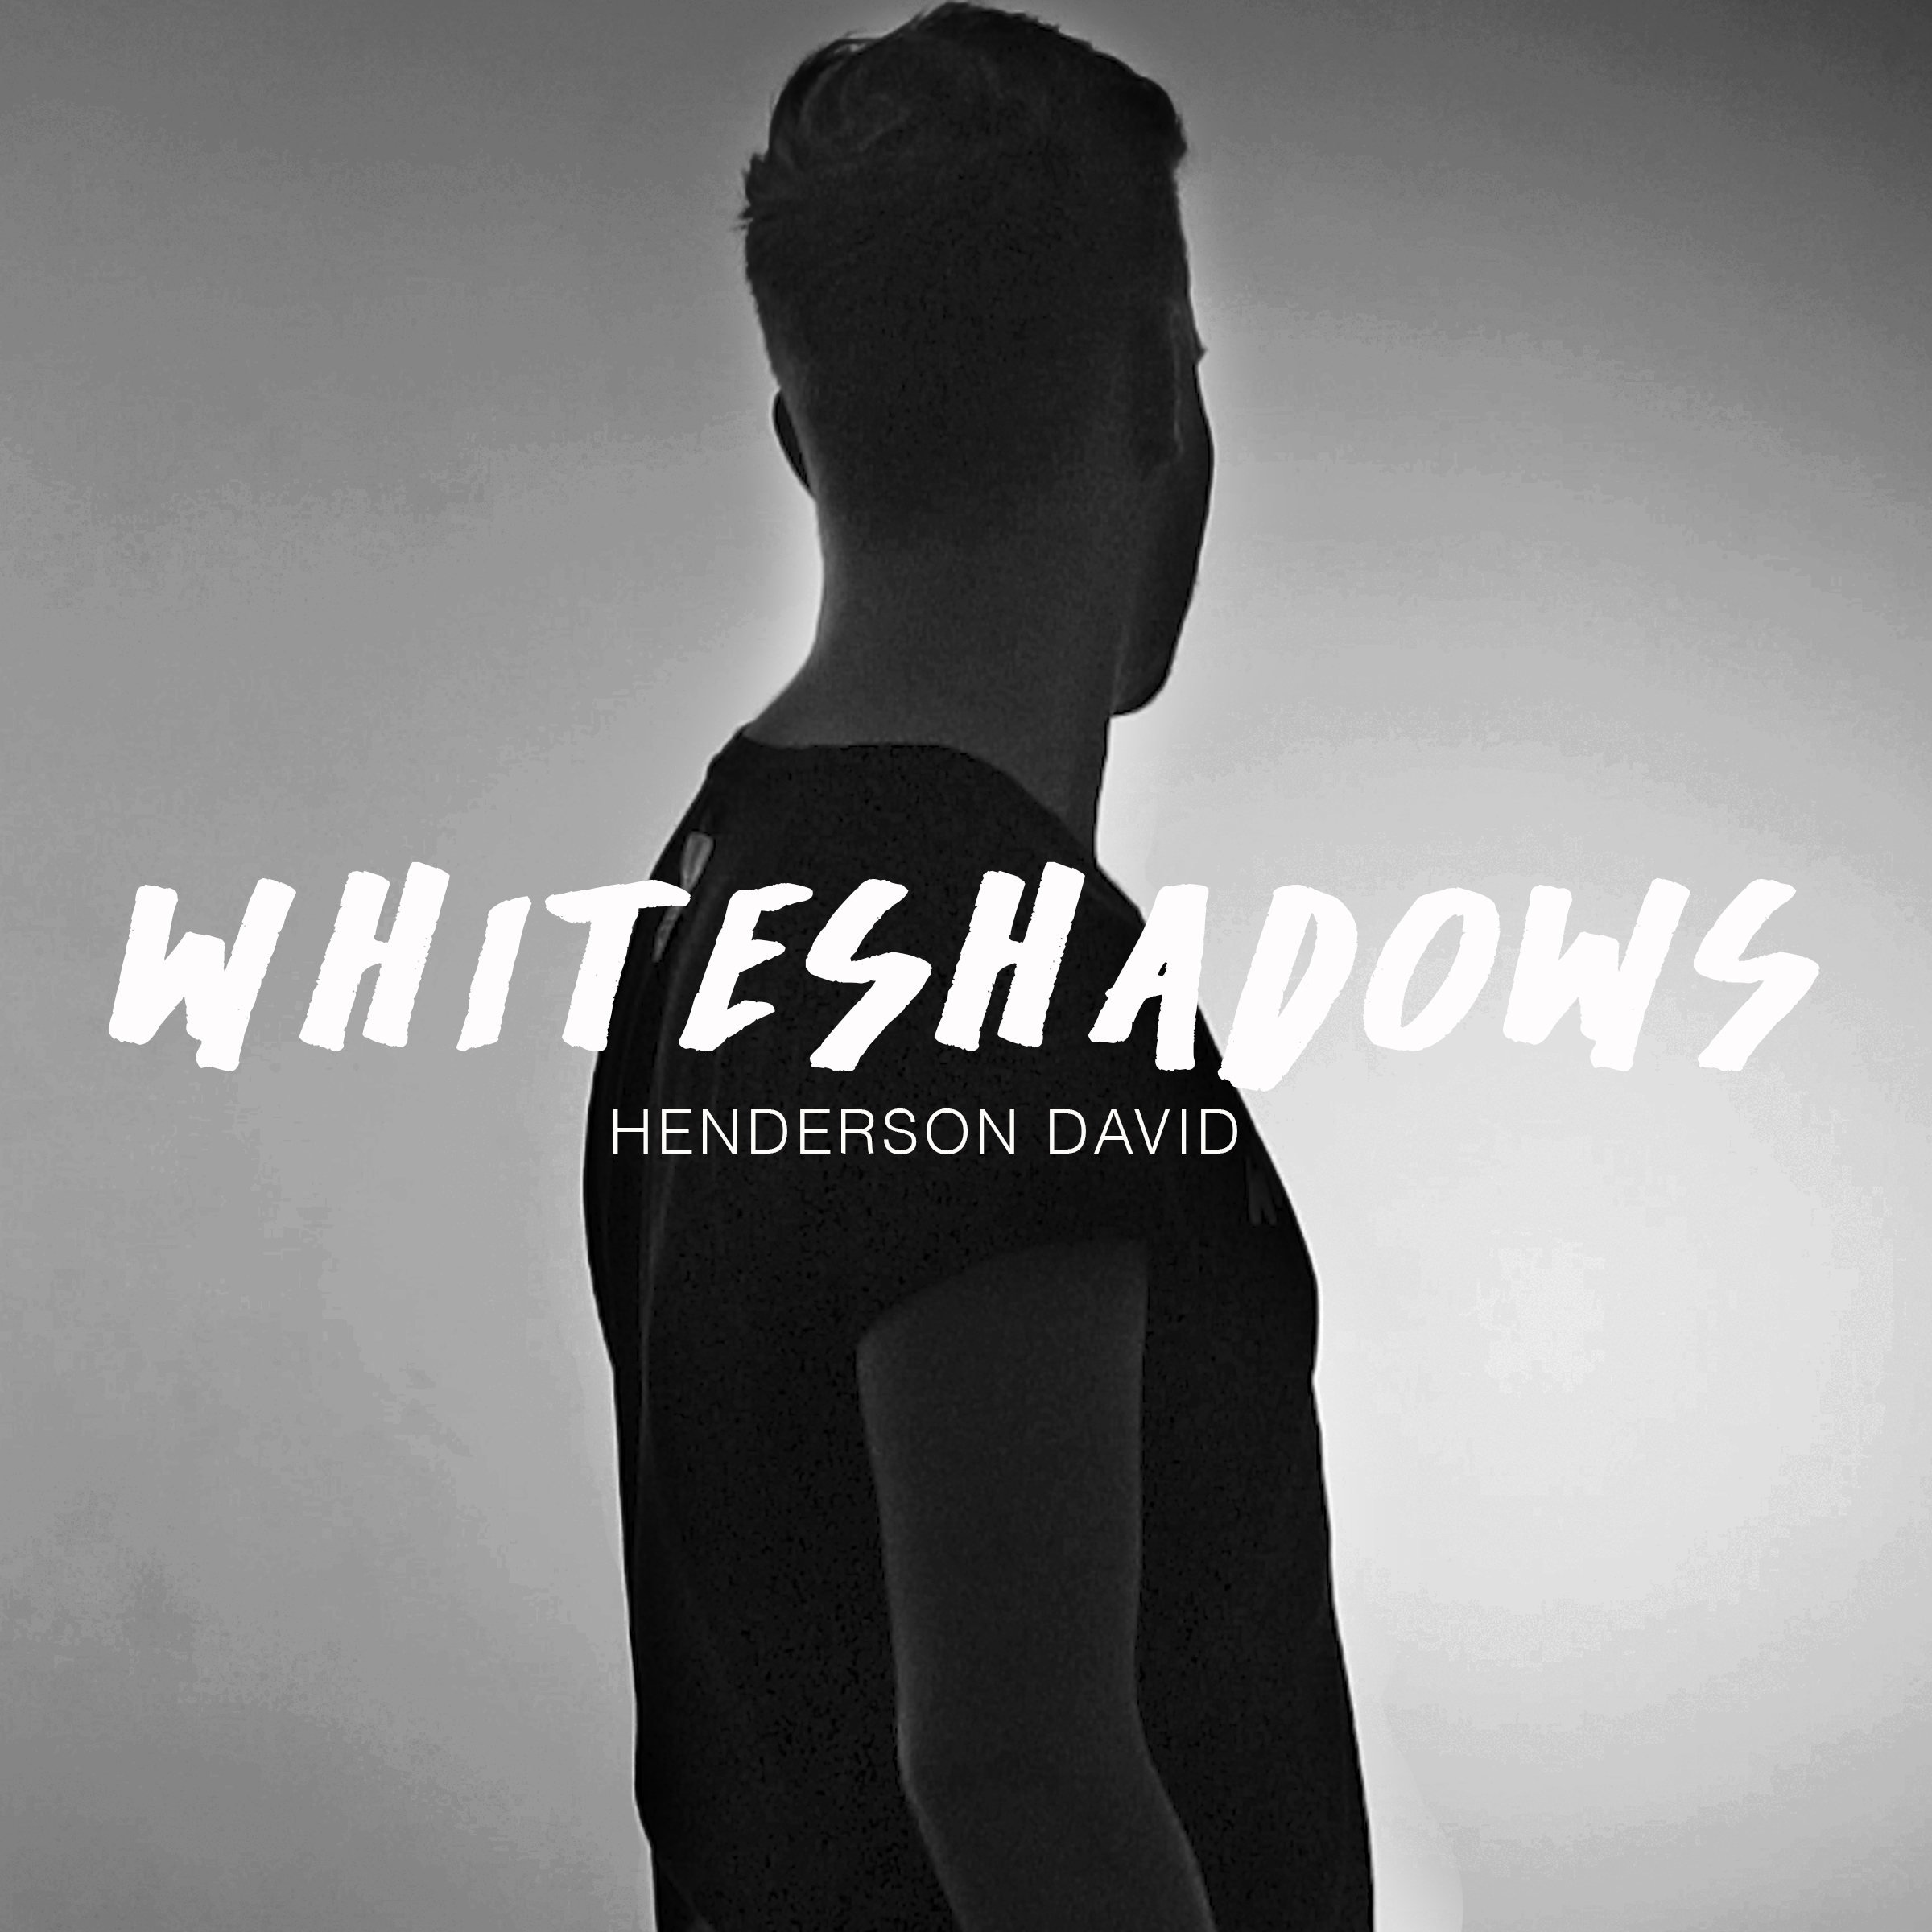 Whiteshadows_DIGI_Cover_0